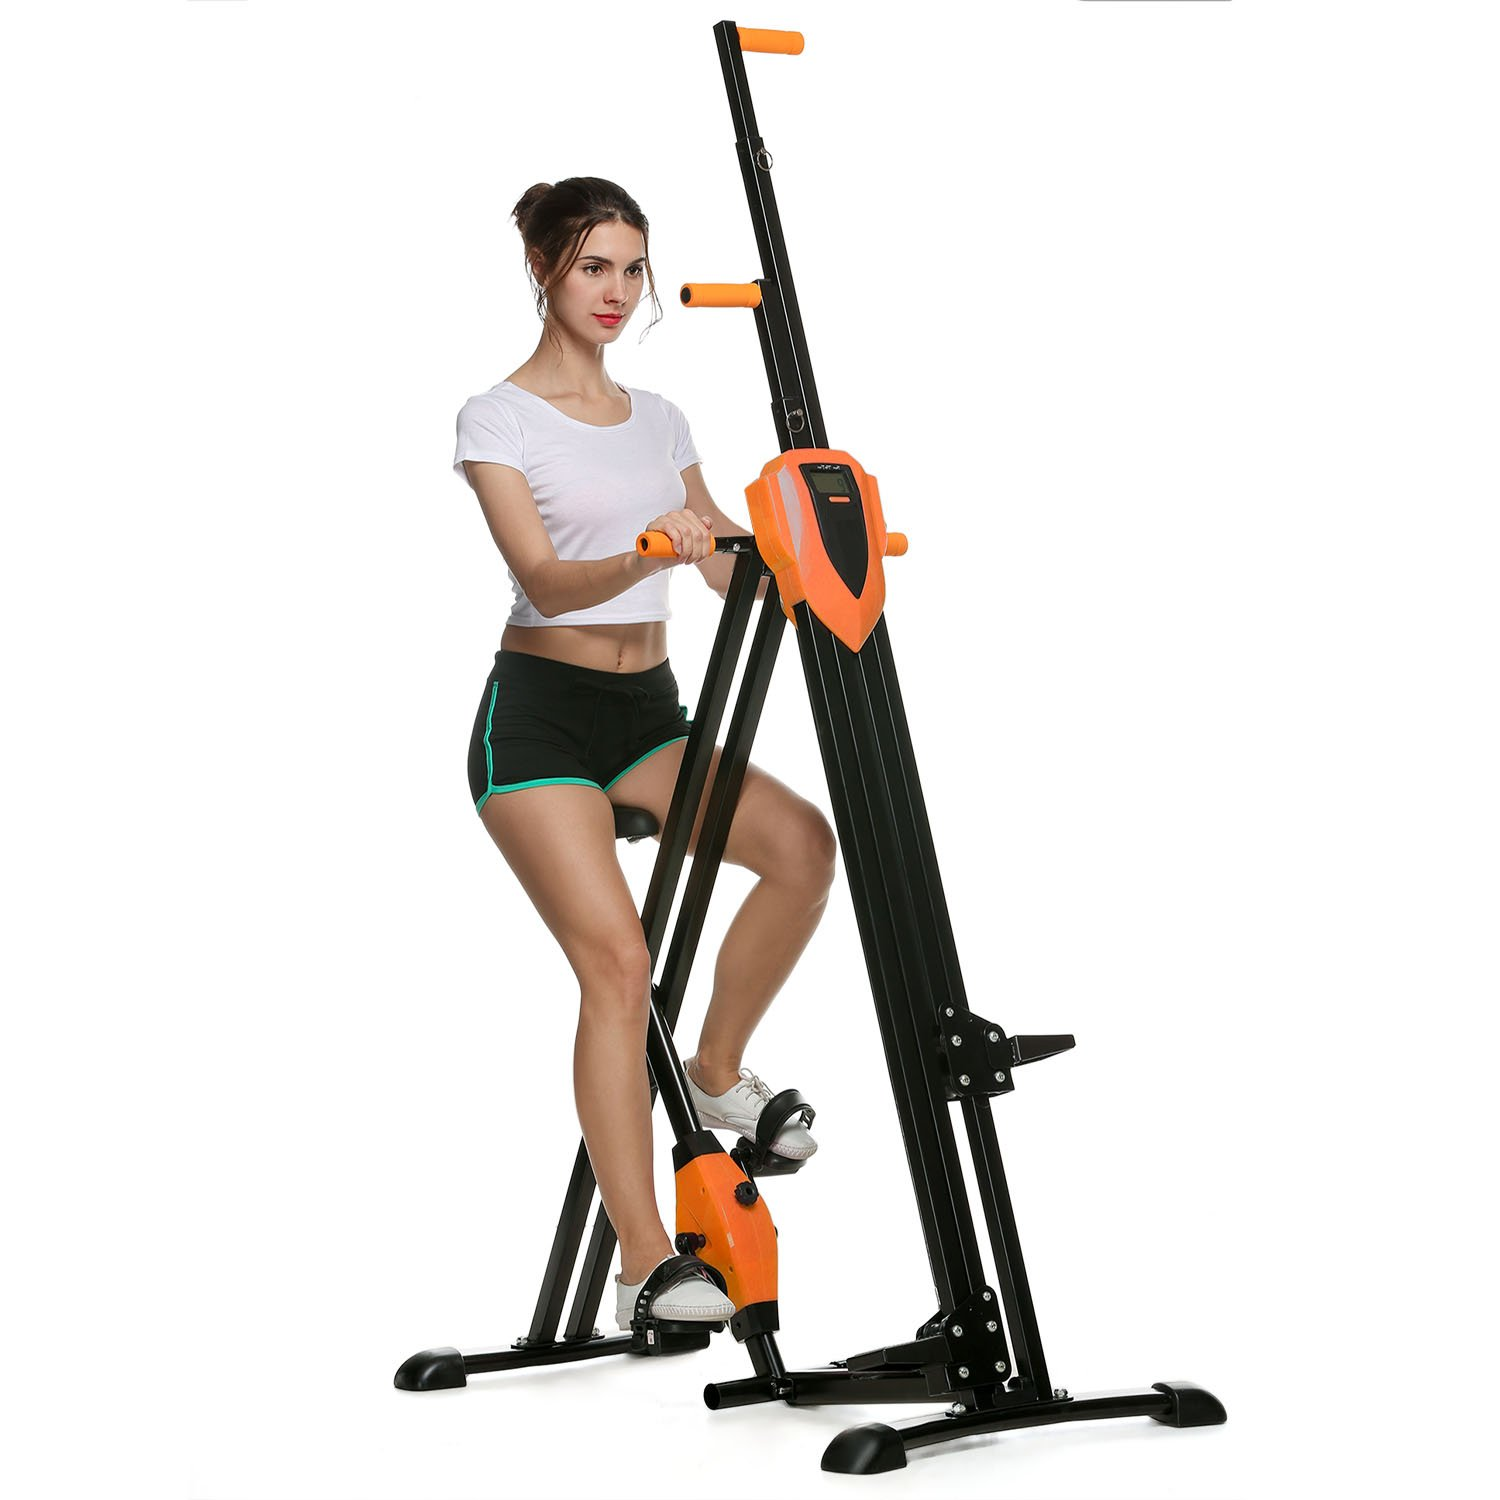 Anfan Vertical Climber Folding Exercise Machine, Maxi Stepper 2 In 1 Exercise Fitness Climbing Stair Machine, Exercise Bike for Home Body Trainer (US Stock) (Orange) by Anfan